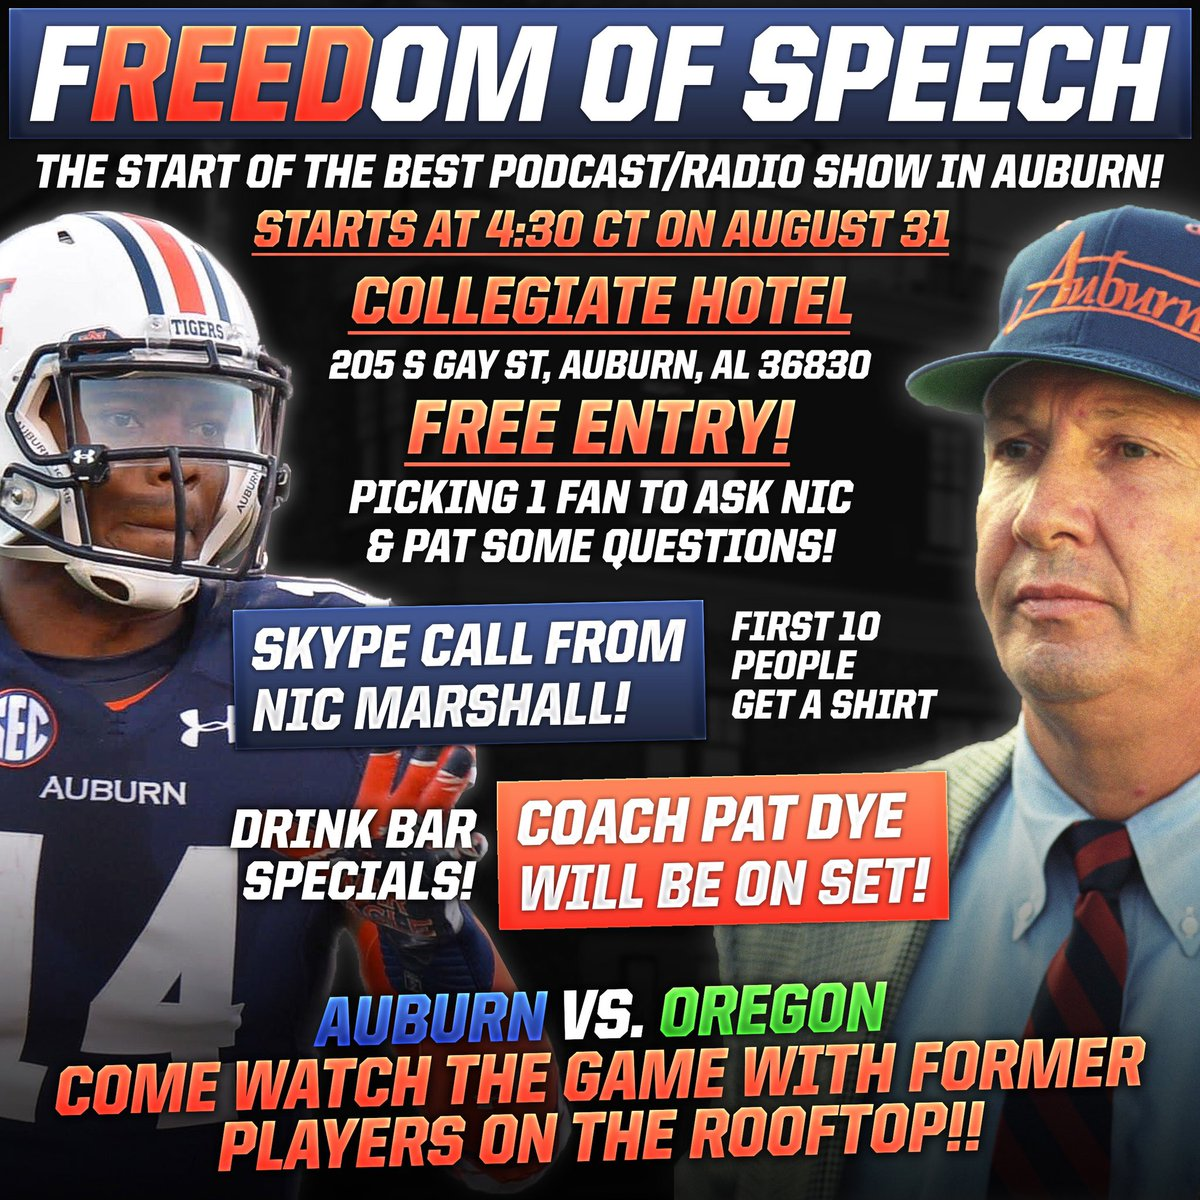 THE WAIT IS OVER! I'll be launching my Podcast/RadioShow August 31st @staycohoAuburn Rooftop! Come out & Watch the game with us! It's a please to have 2Auburn Legends on the 1st Show! @CoachPatDye_ & @NicMarshall7 ! Who wants to meet these guys & ask them some questions? War Dam!<br>http://pic.twitter.com/ZYvDq5reJM